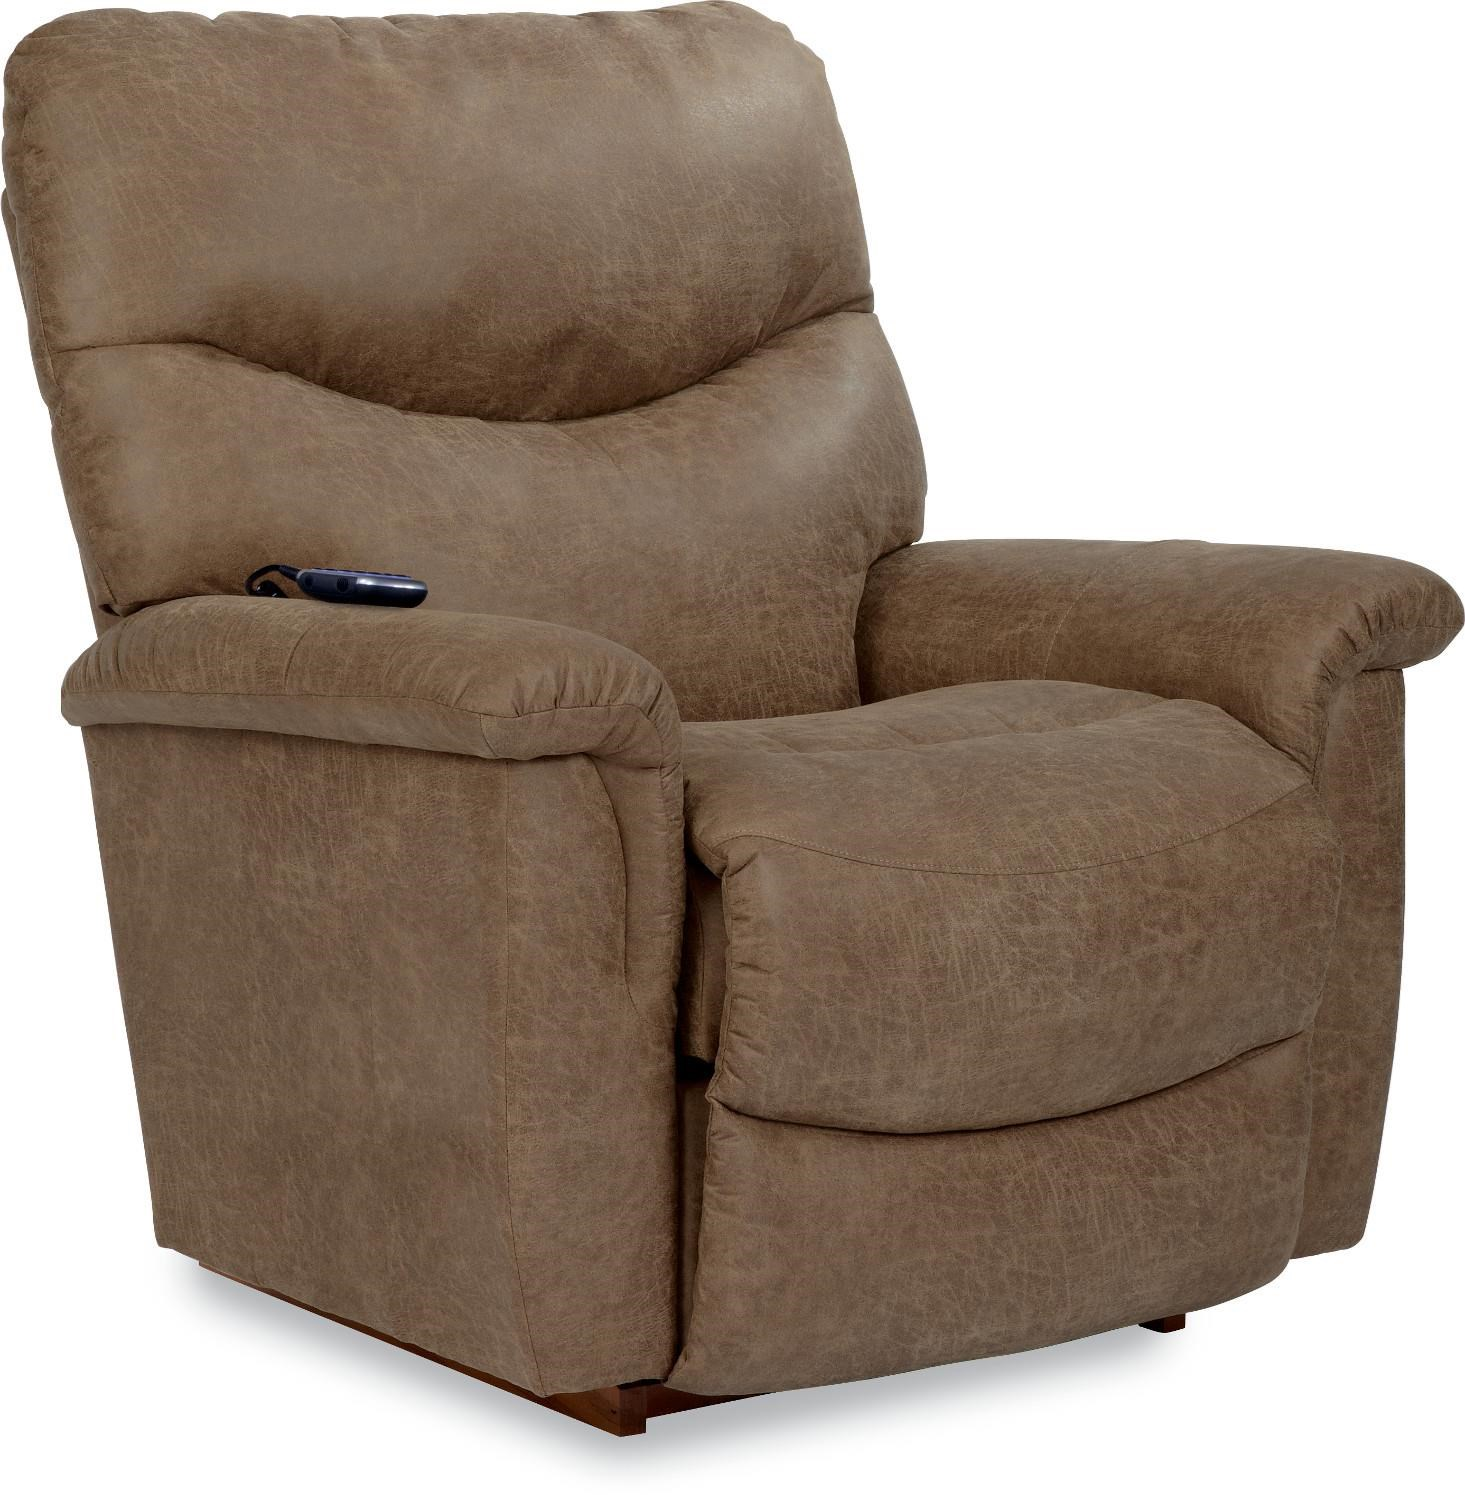 James Power Rocking Recliner by La-Z-Boy at Bennett's Furniture and Mattresses